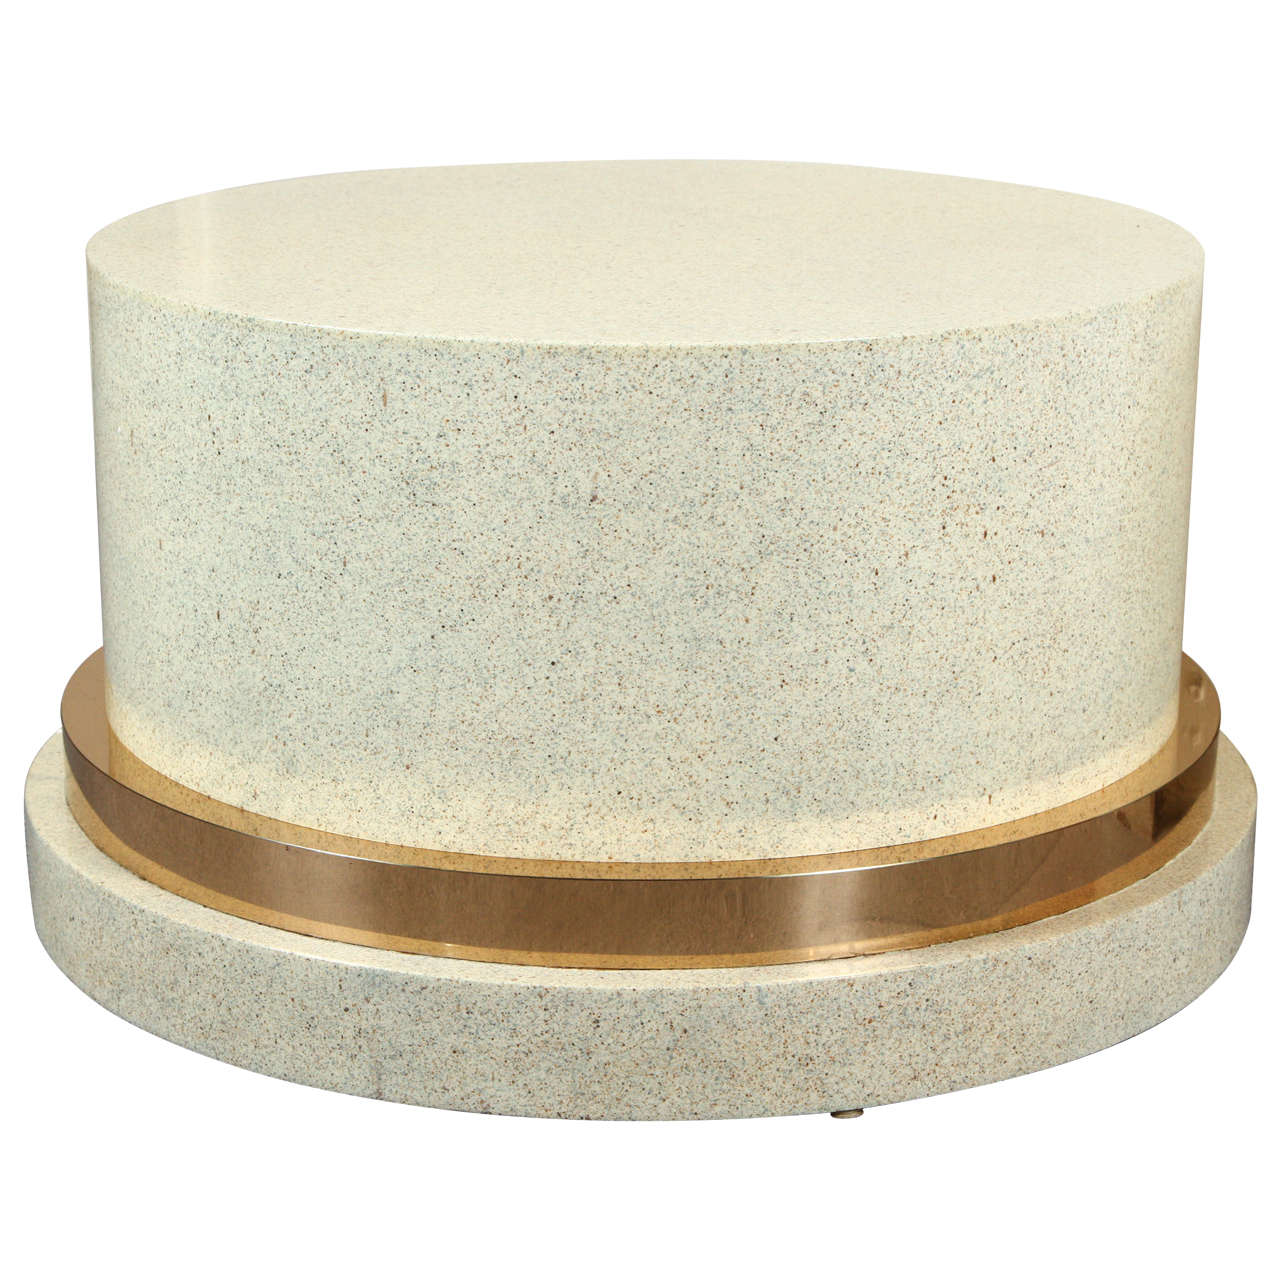 Low Pedestal Or Coffee Table Base Of Wood And Br With A Faux Stone Finish